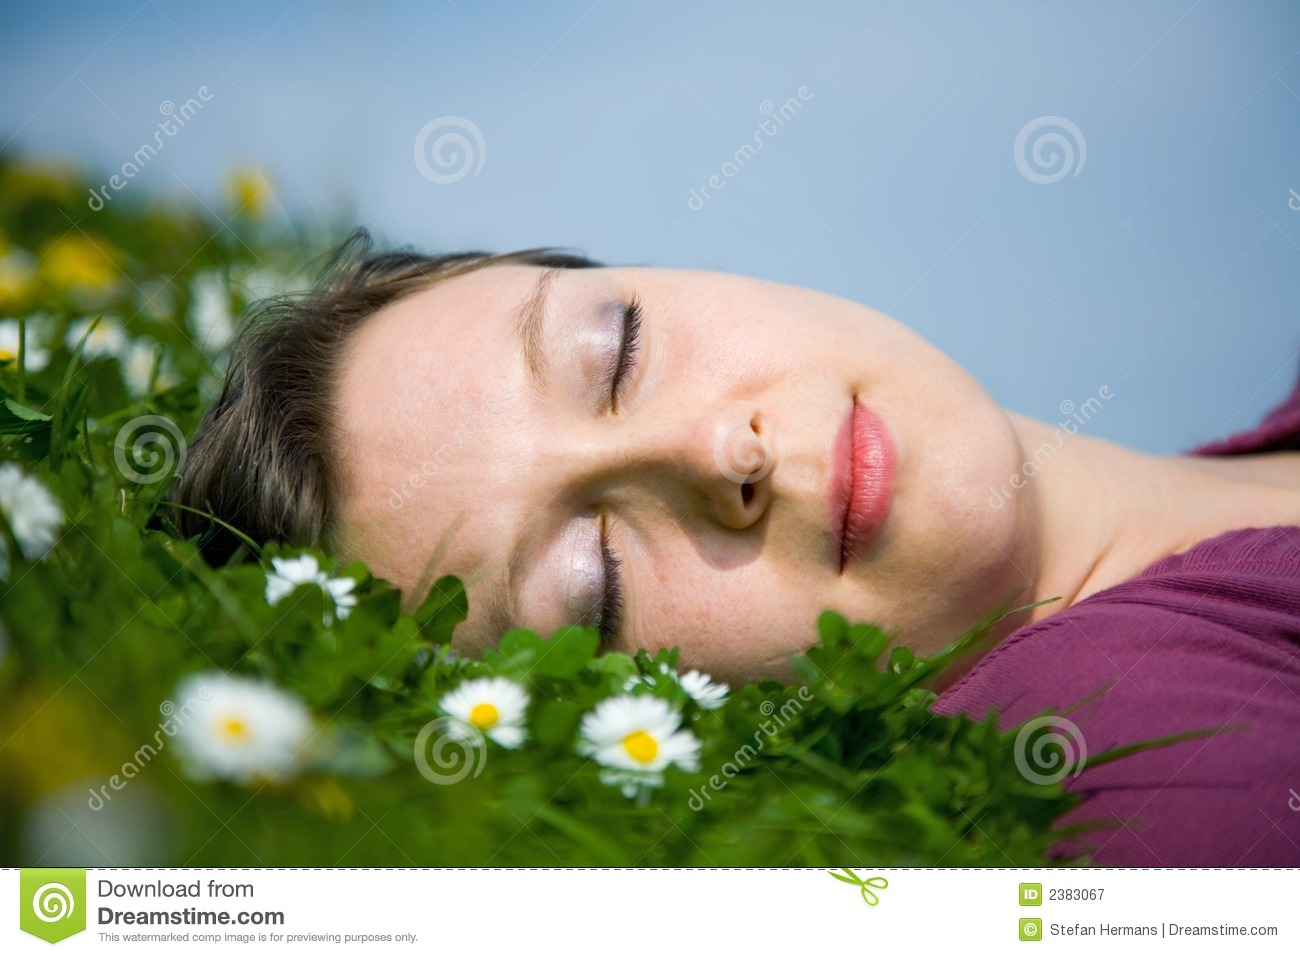 The Sleeping Swans >> Girl Sleeping In The Grass Royalty Free Stock Photography - Image: 2383067